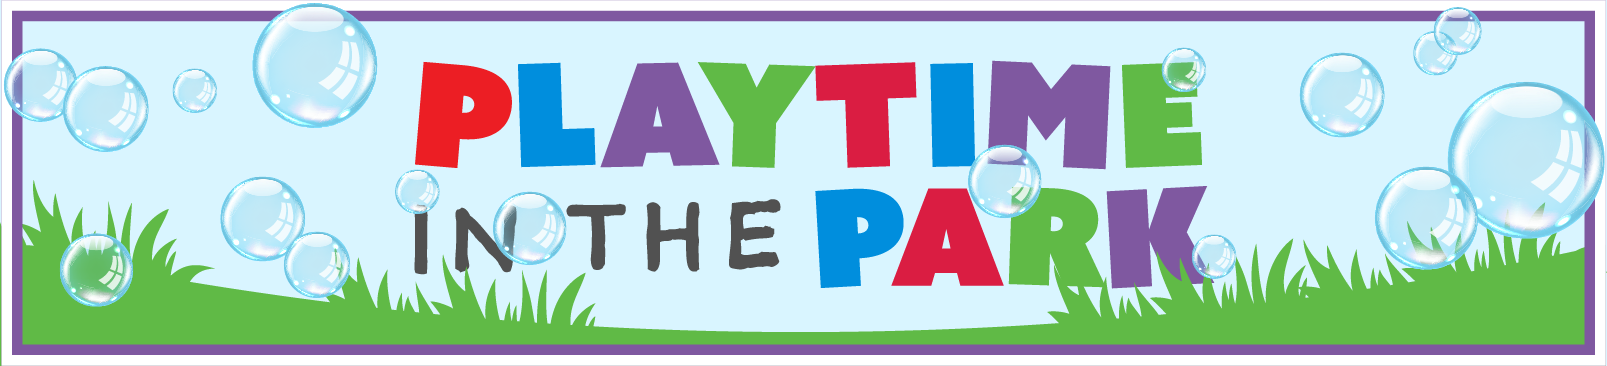 Playtime in the Park banner